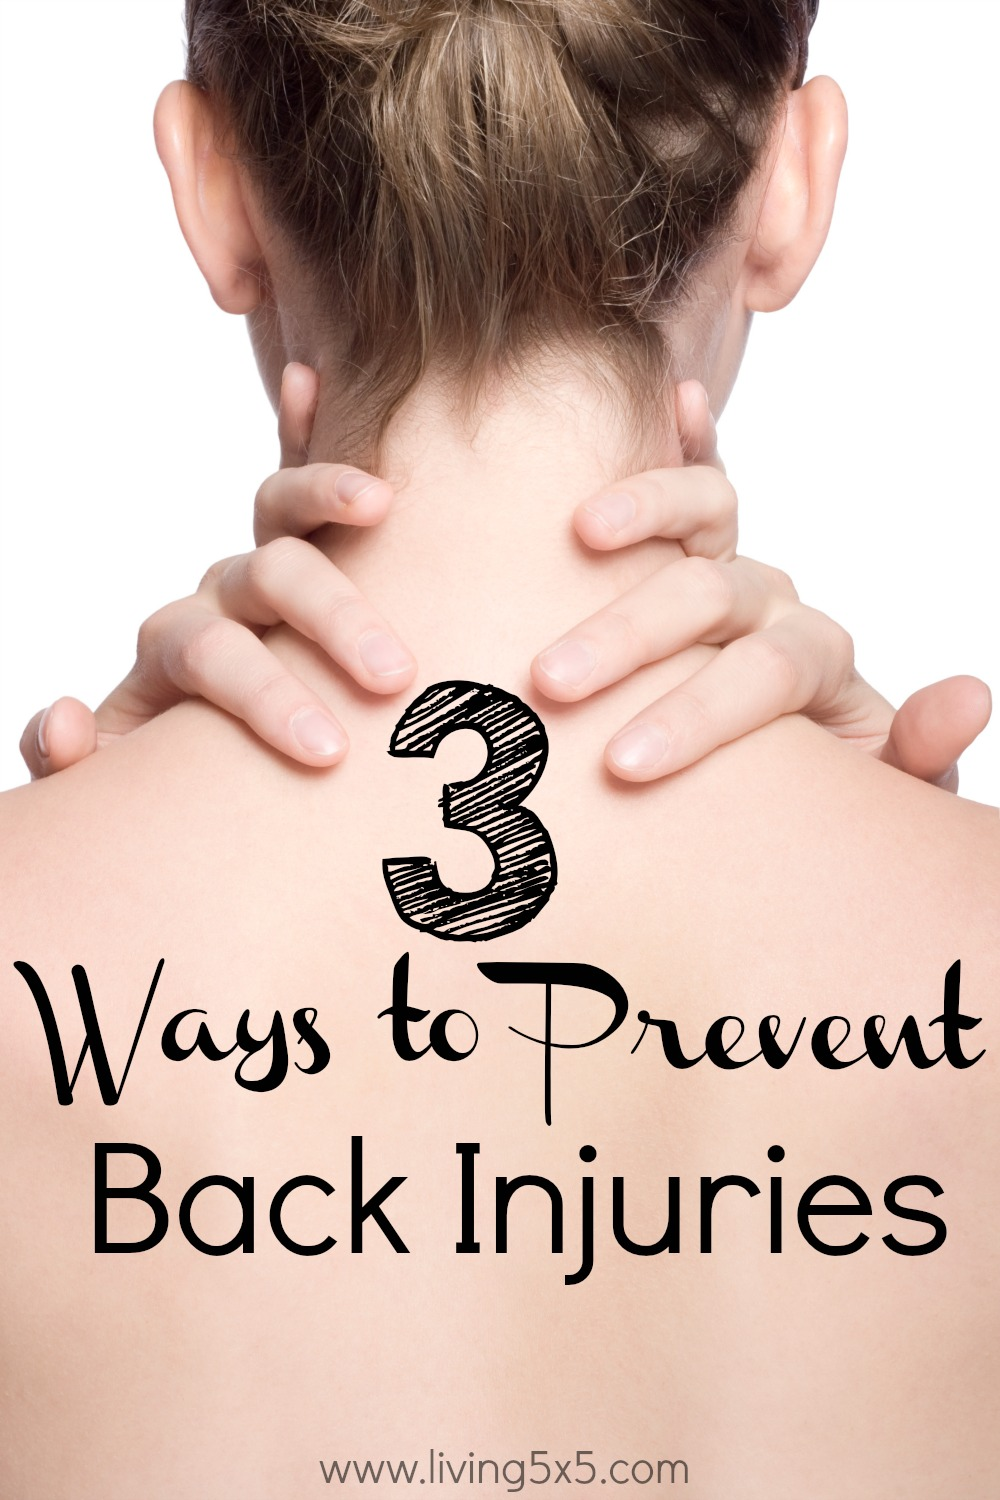 The back is a delicate thing. Follow these simple rules in how to prevent back injuries and protect your back no matter what you are doing.